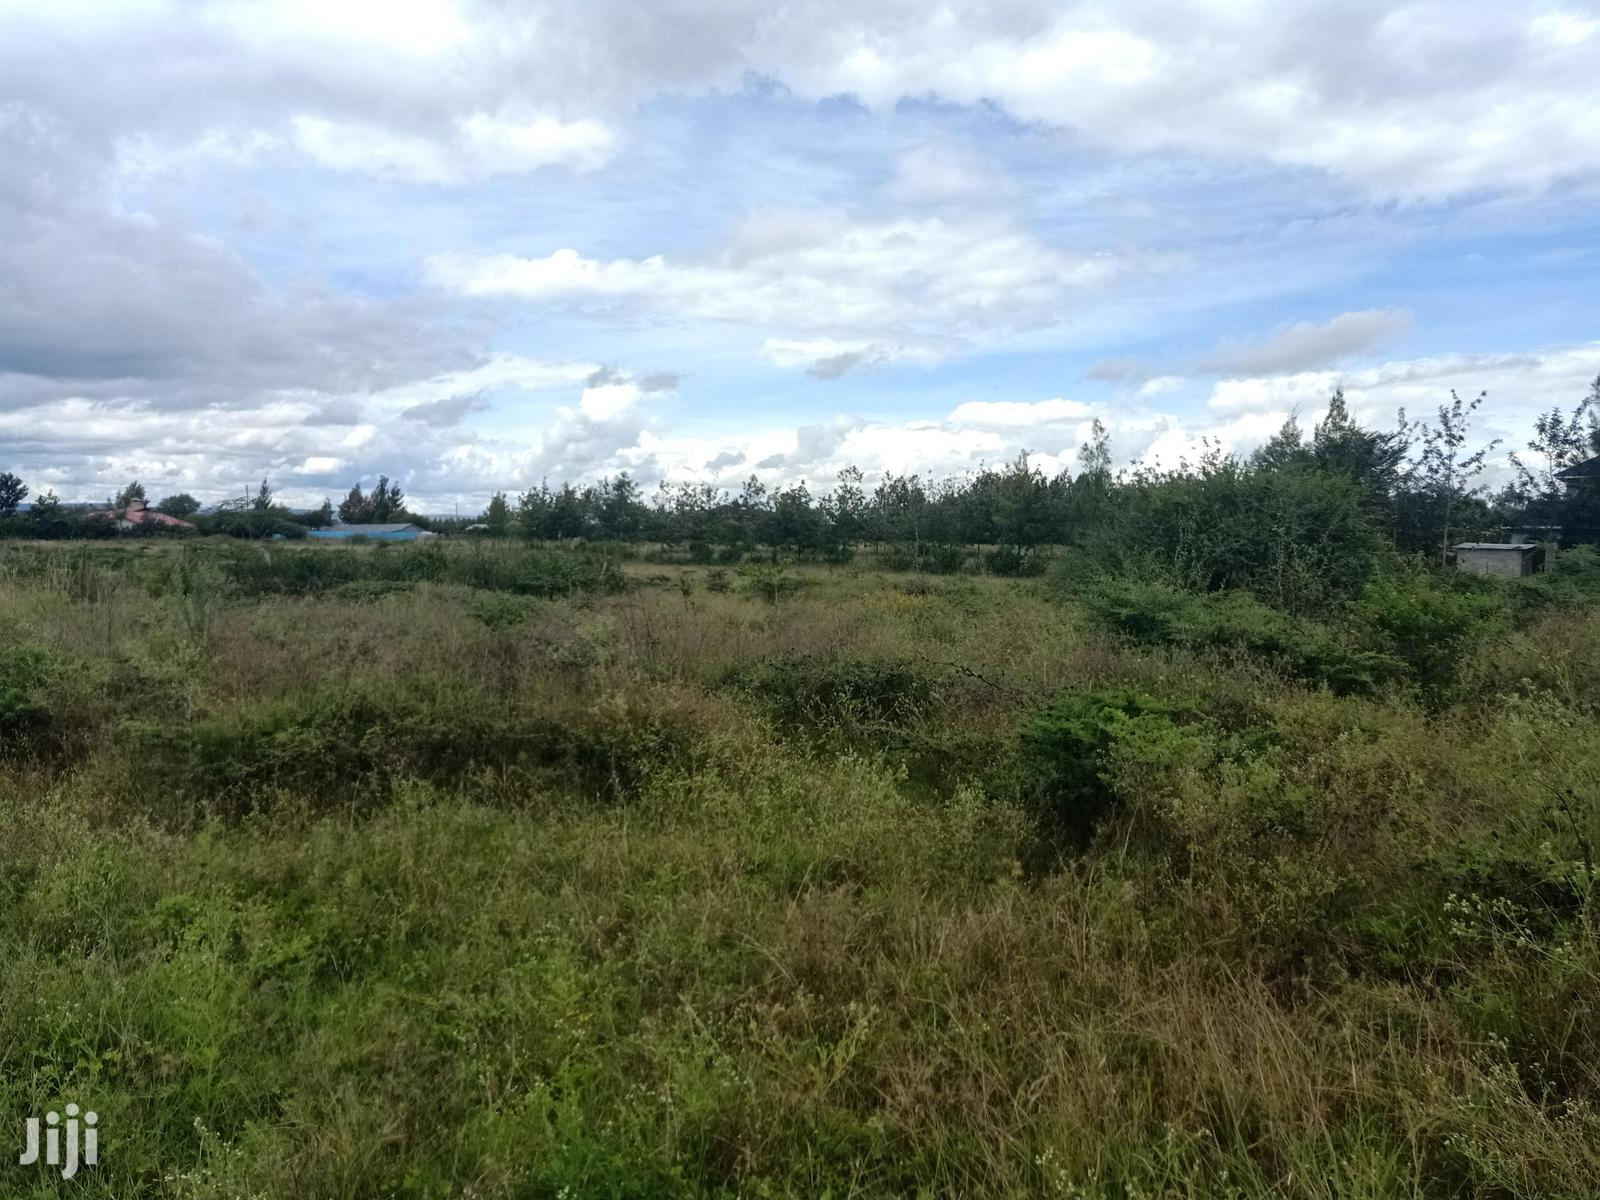 Two 1/8 Prime Plots for Sale in Milimani, Kitengela